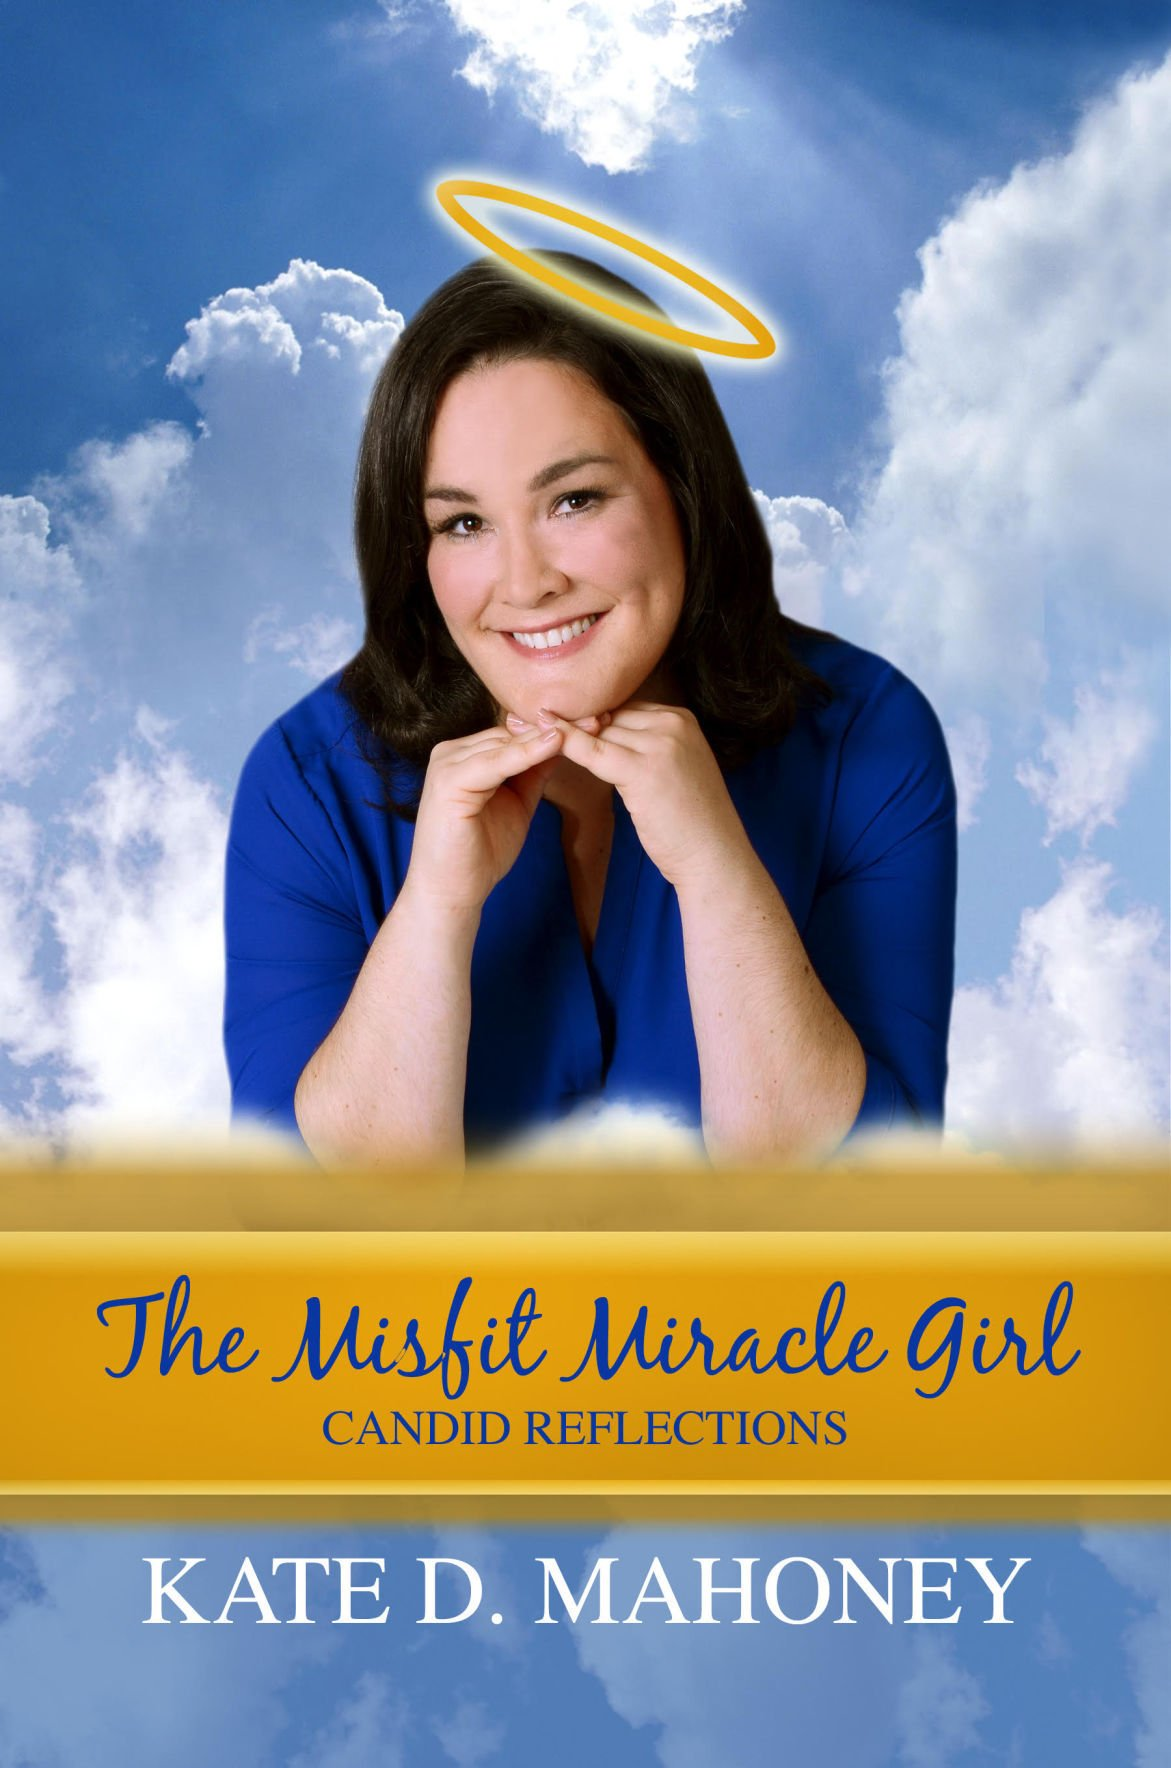 A story for everyone: Syracuse woman pens memoir detailing her miracle, relating to others